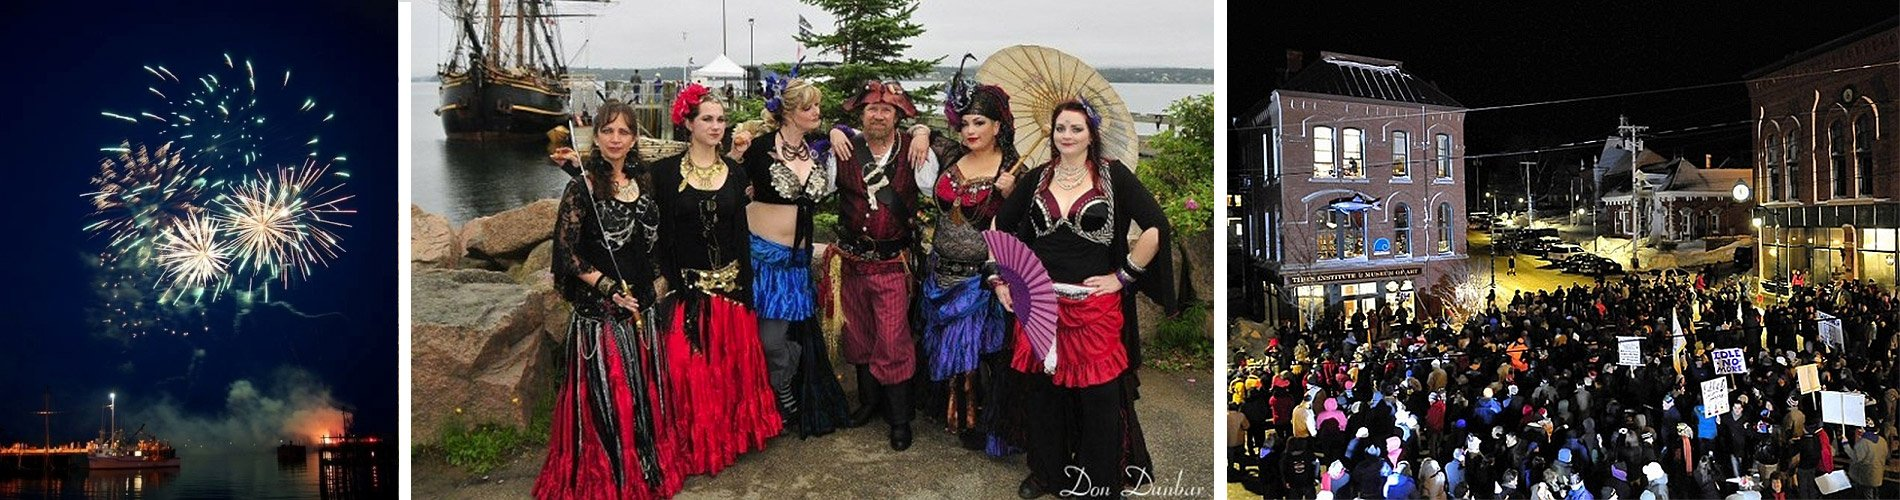 Pirate-Festival-Eastpor